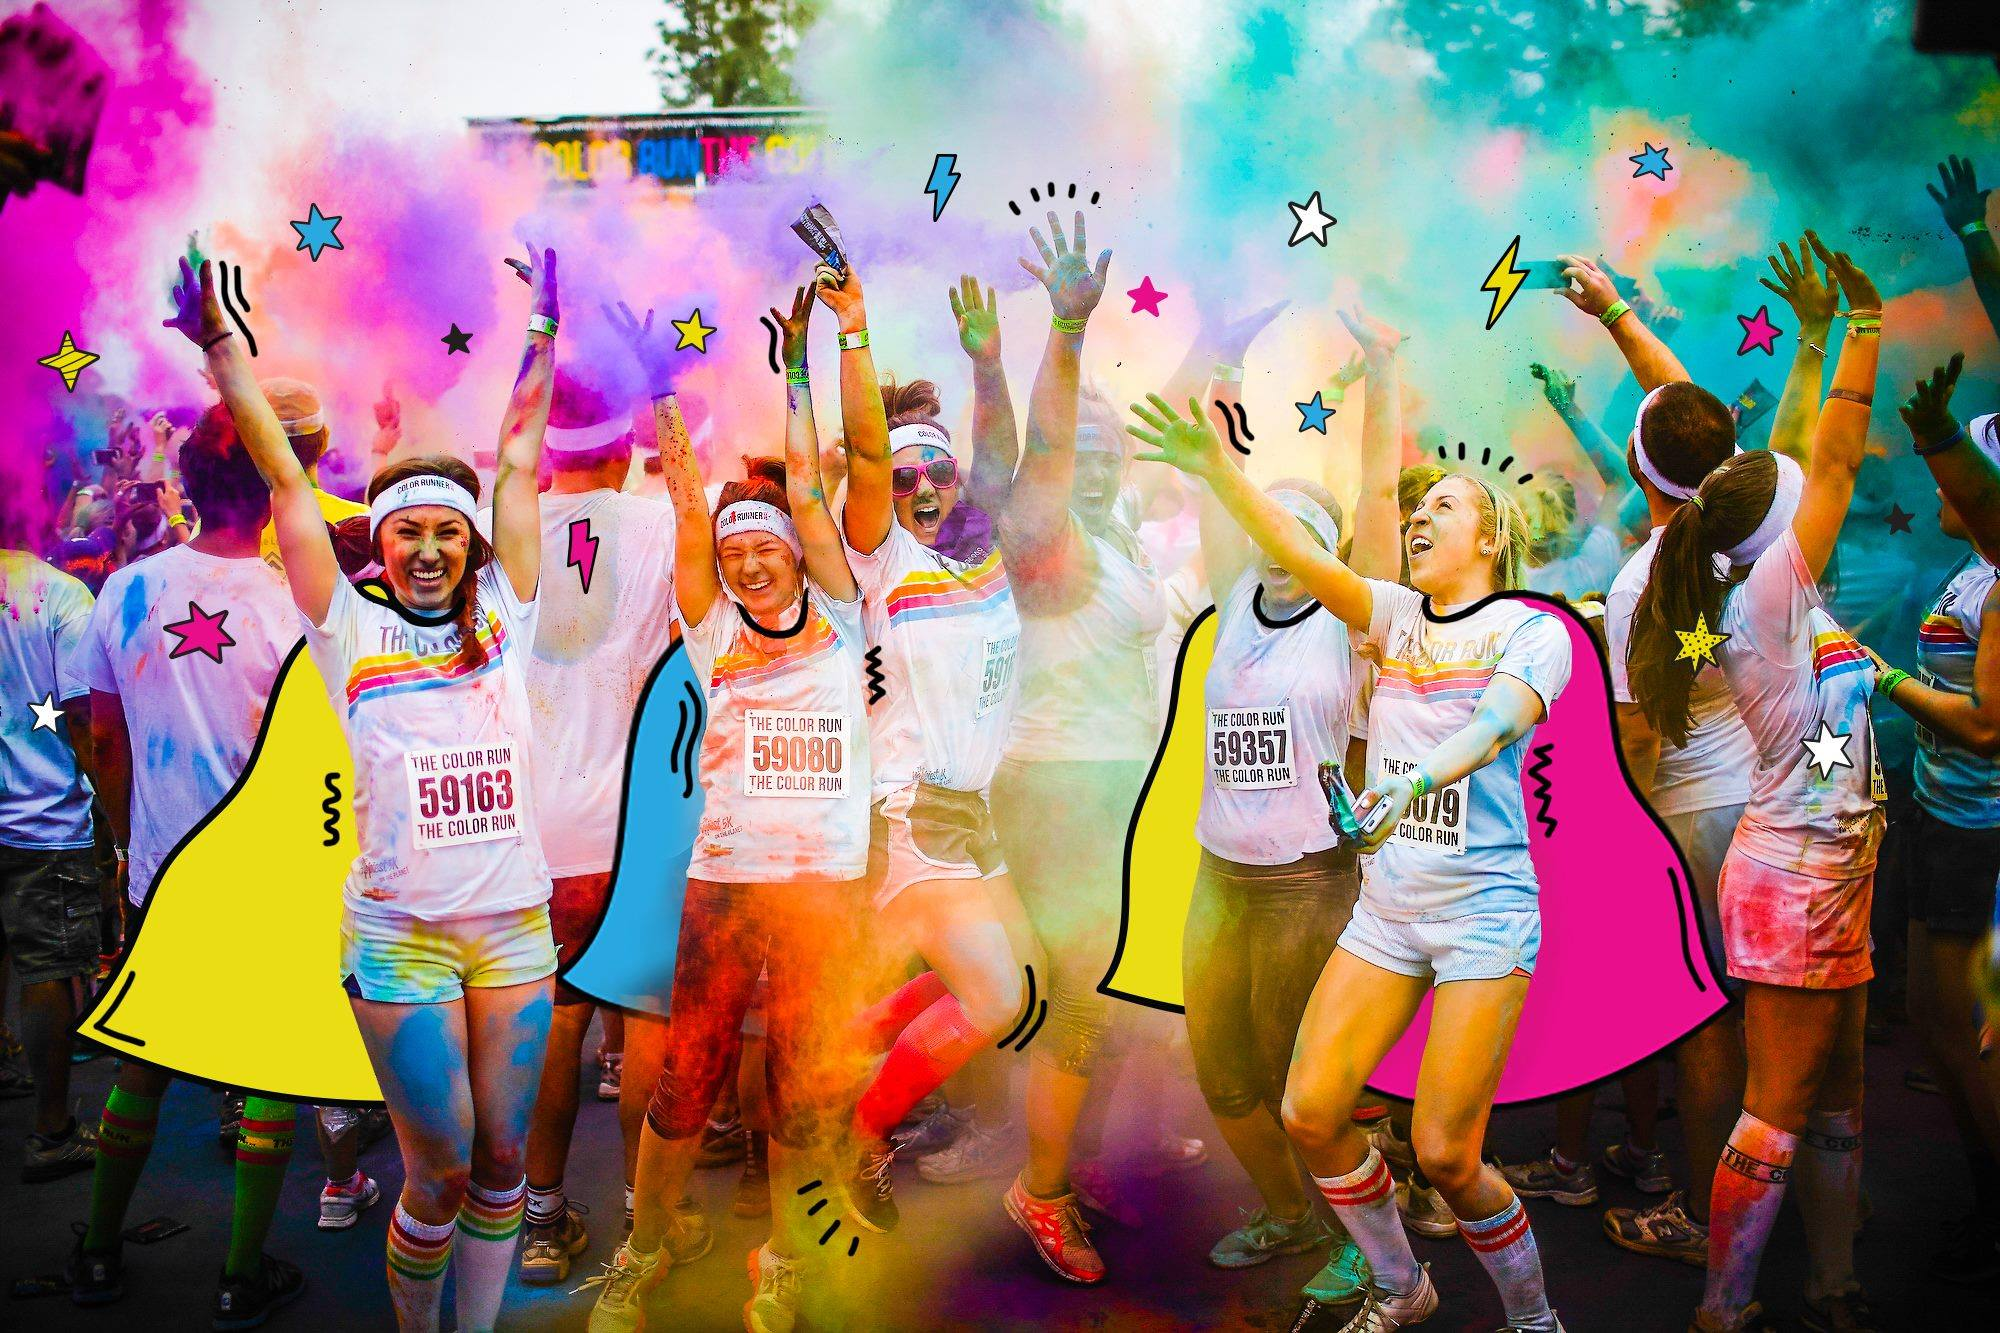 The happiest 5k on the planet!